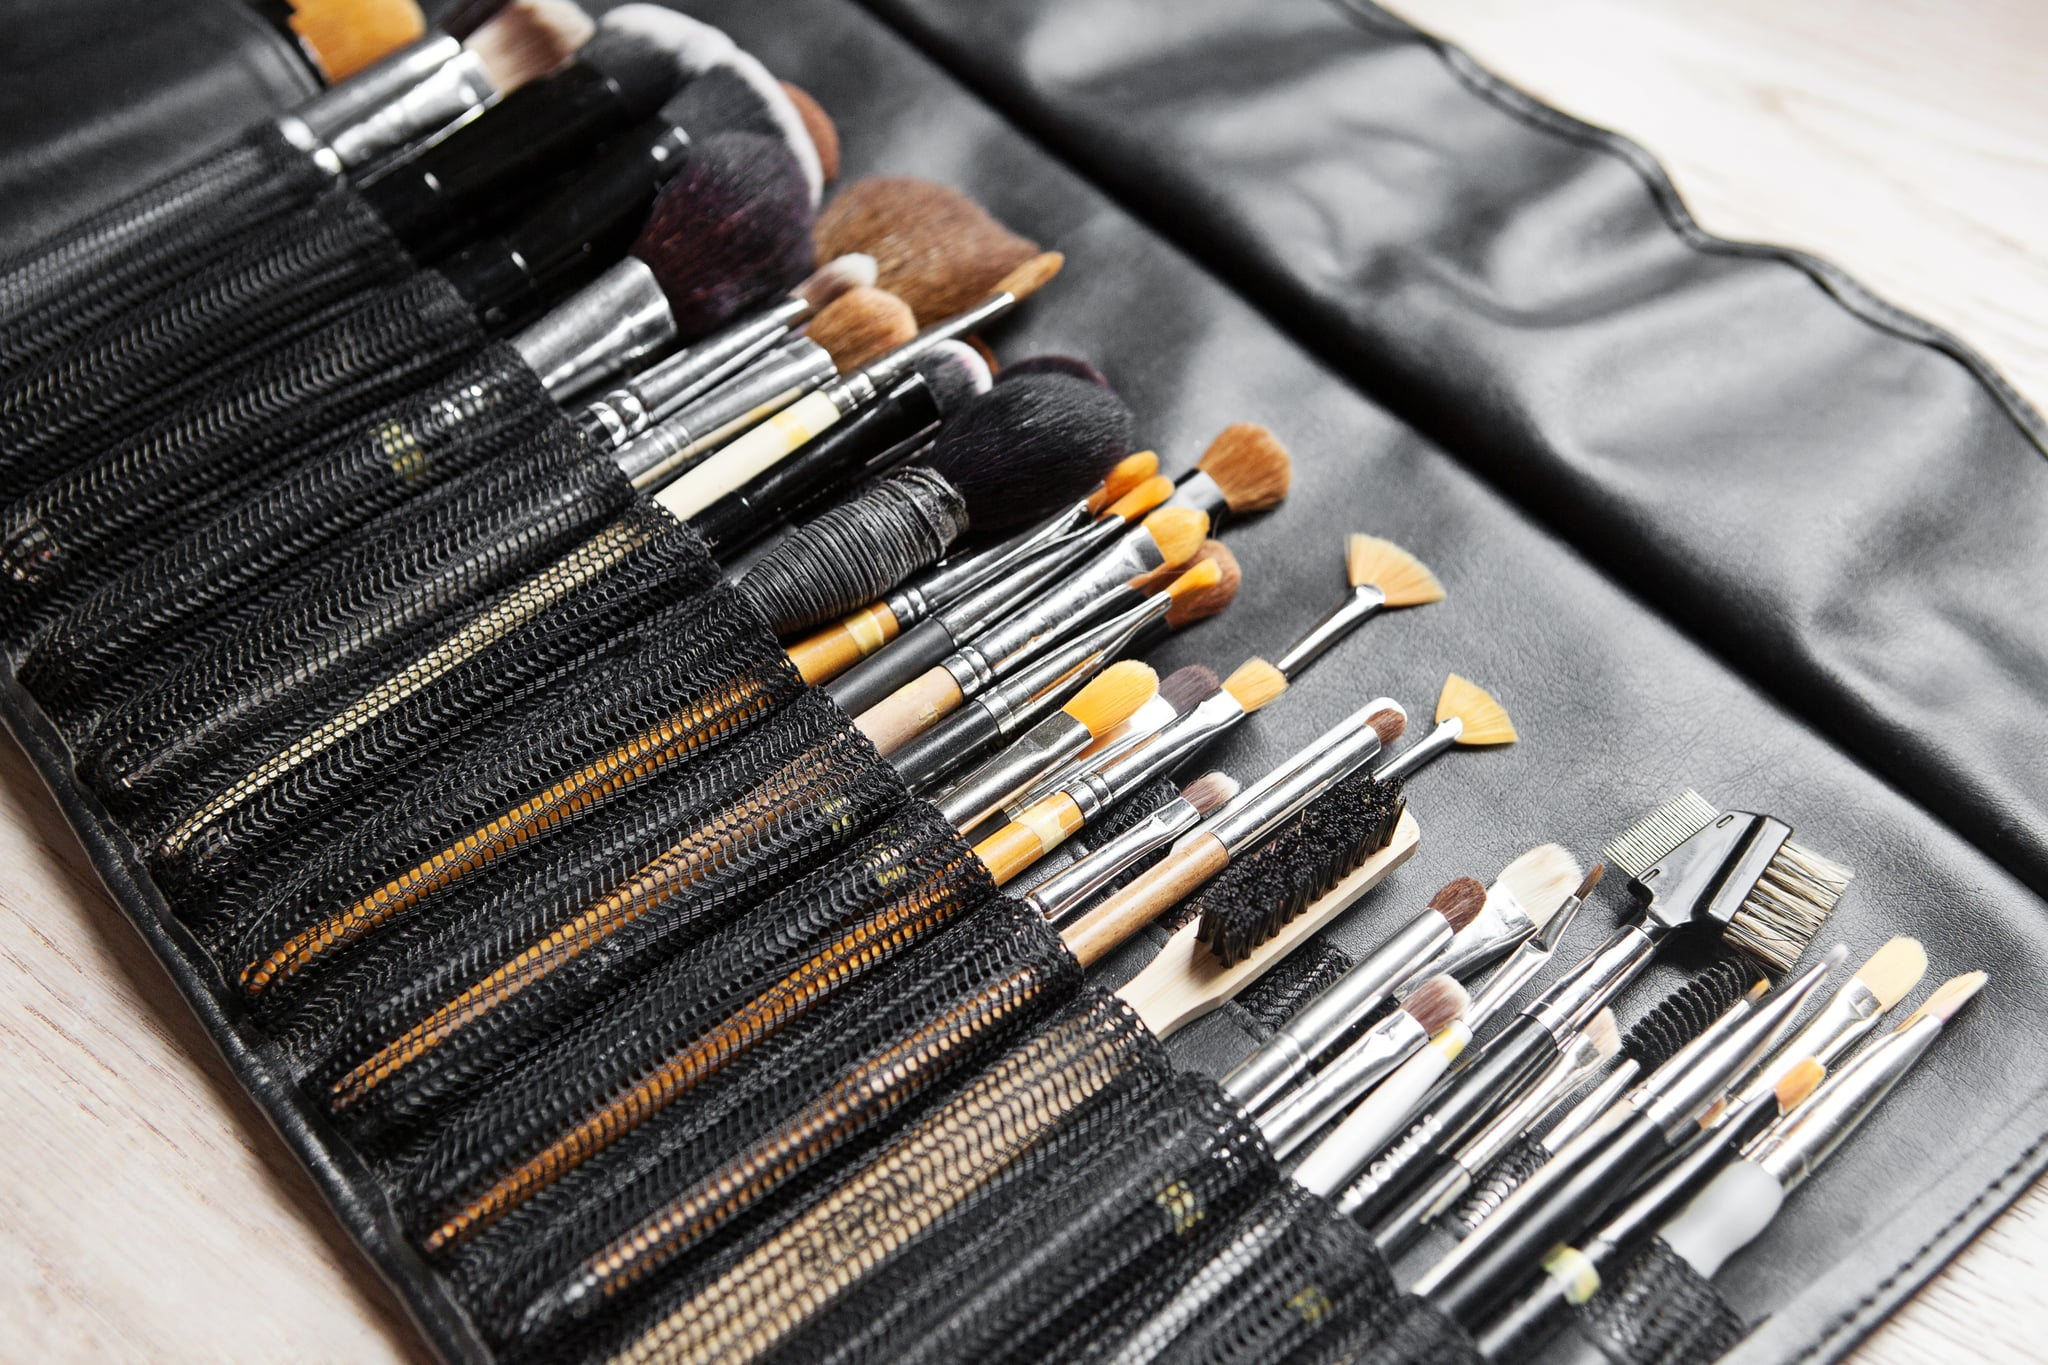 How to Clean Your Makeup Brushes | POPSUGAR Beauty UK